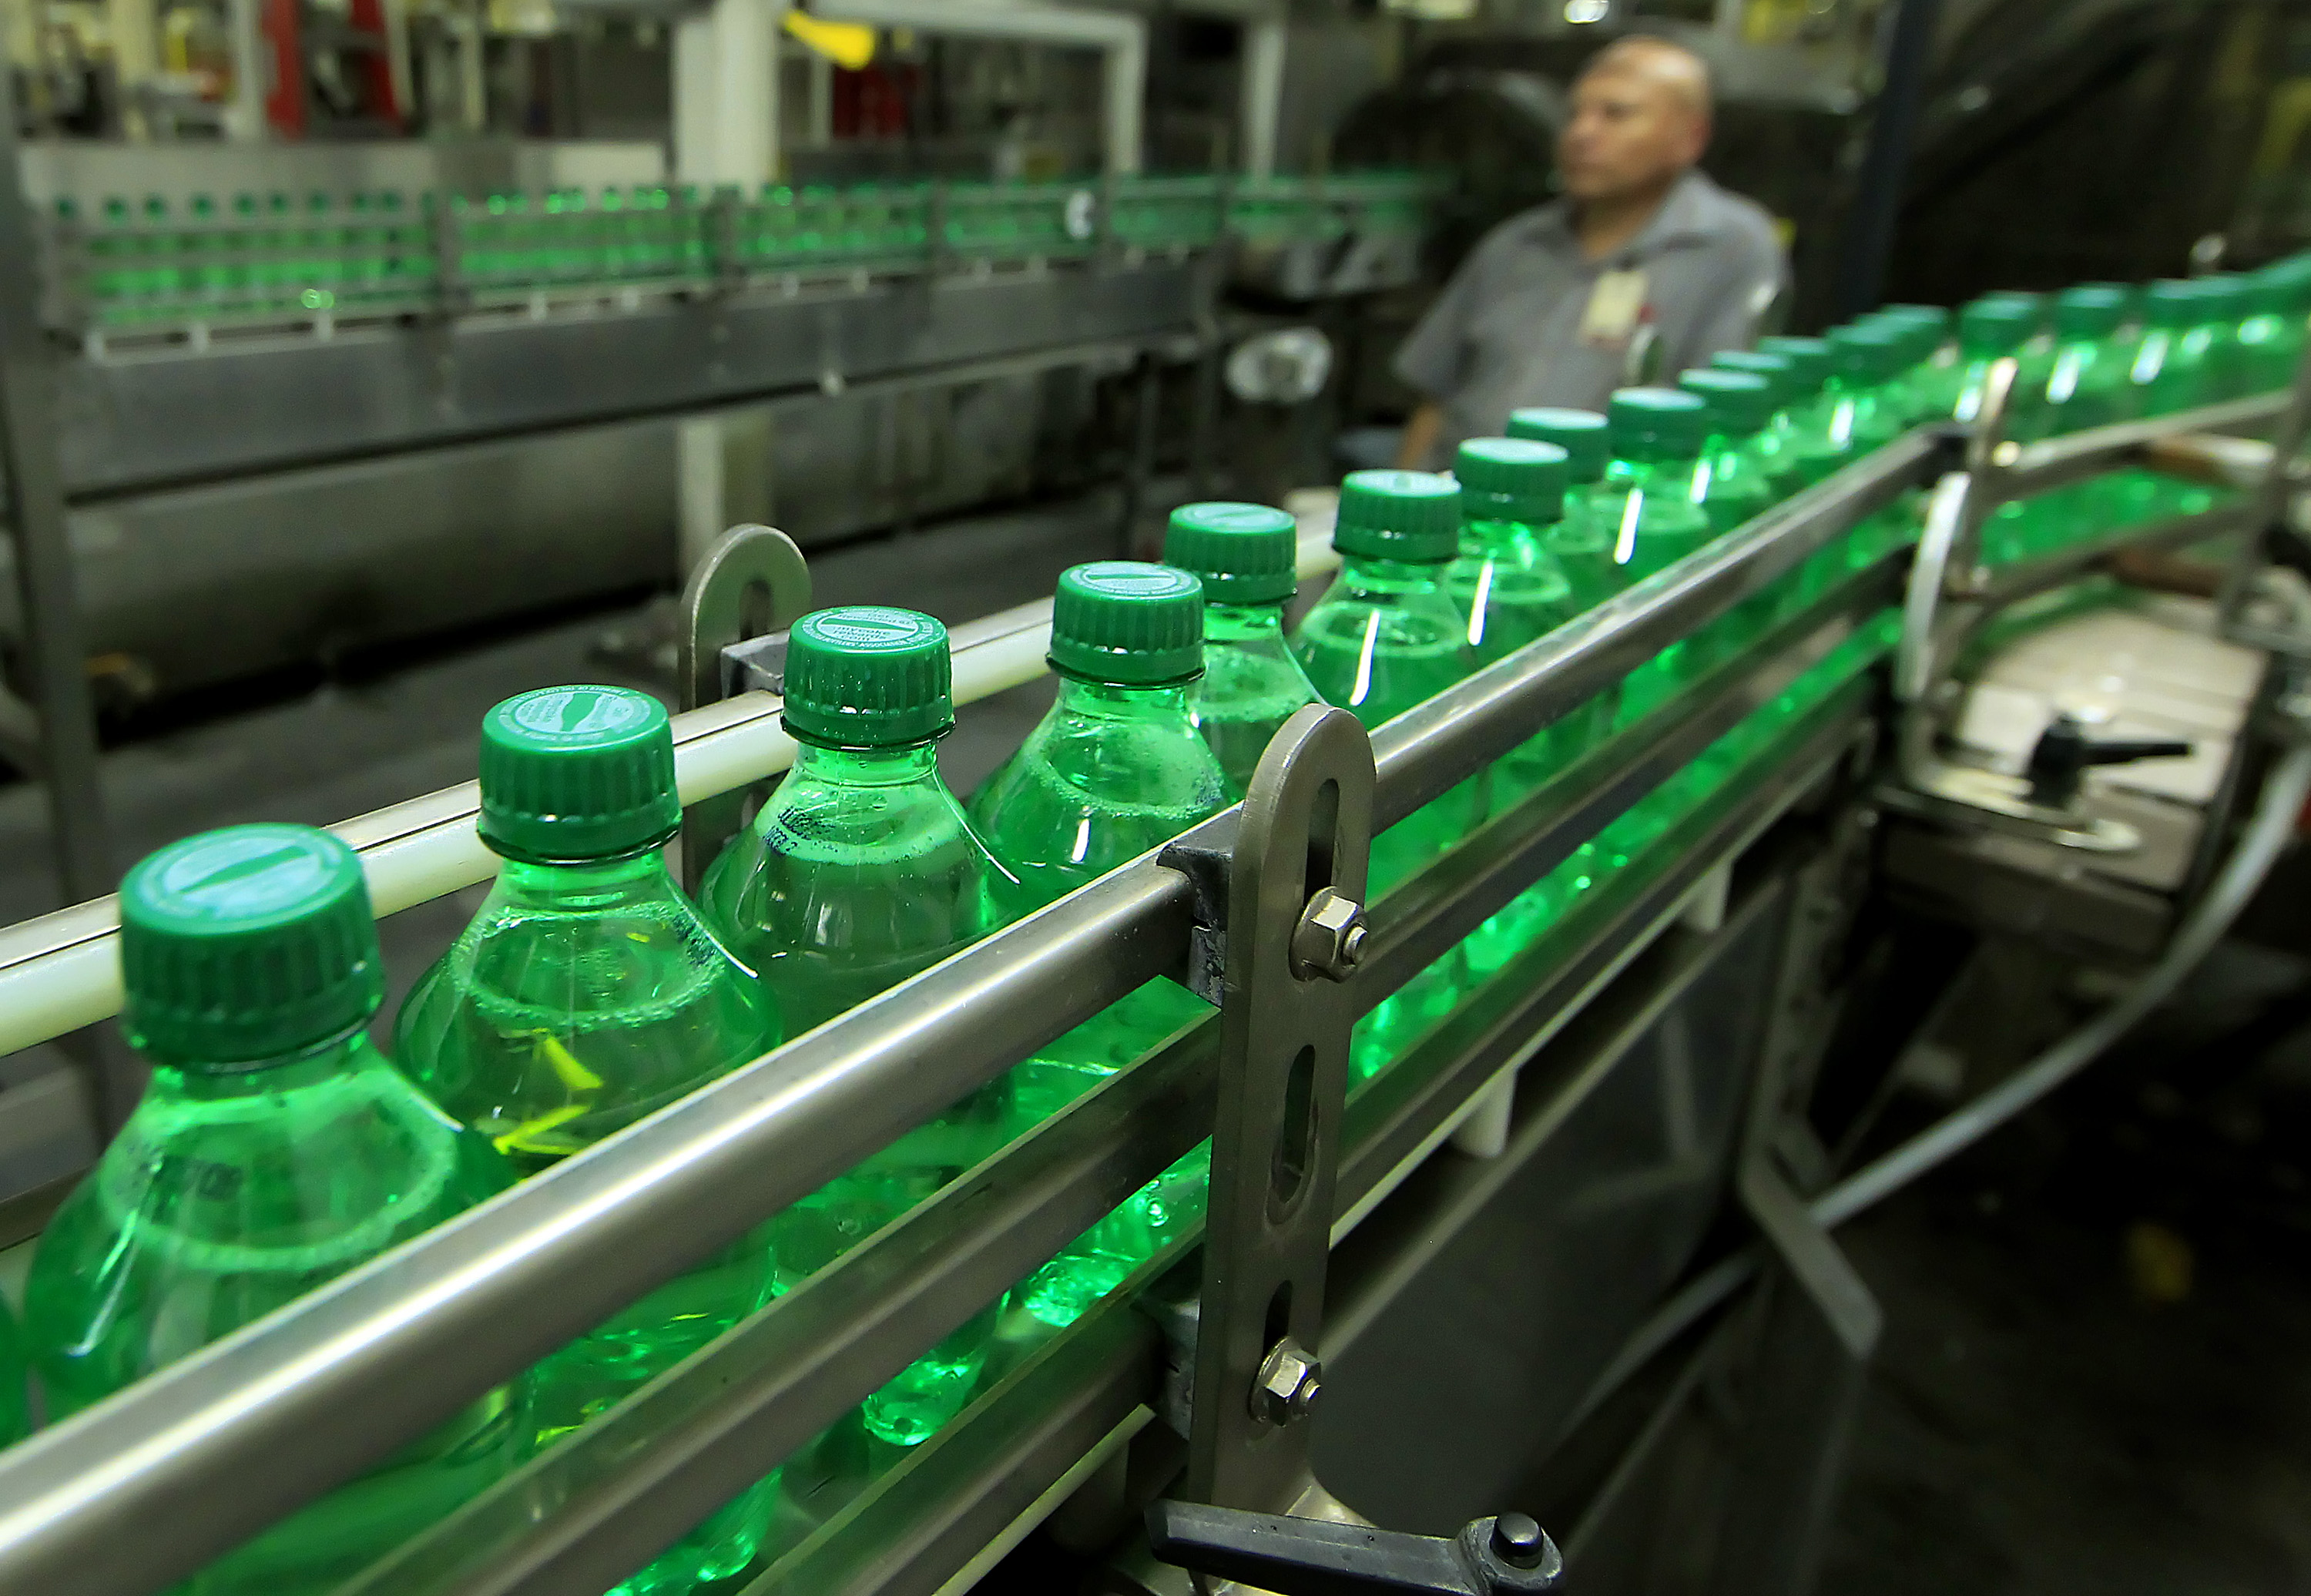 Bottles of Coca-Cola Co.'s Sprite on a conveyor belt at the company's bottling plant in Salt Lake City, Utah. Companies may start using more plastic bottles following Donald Trump's tariffs on steel and aluminum.